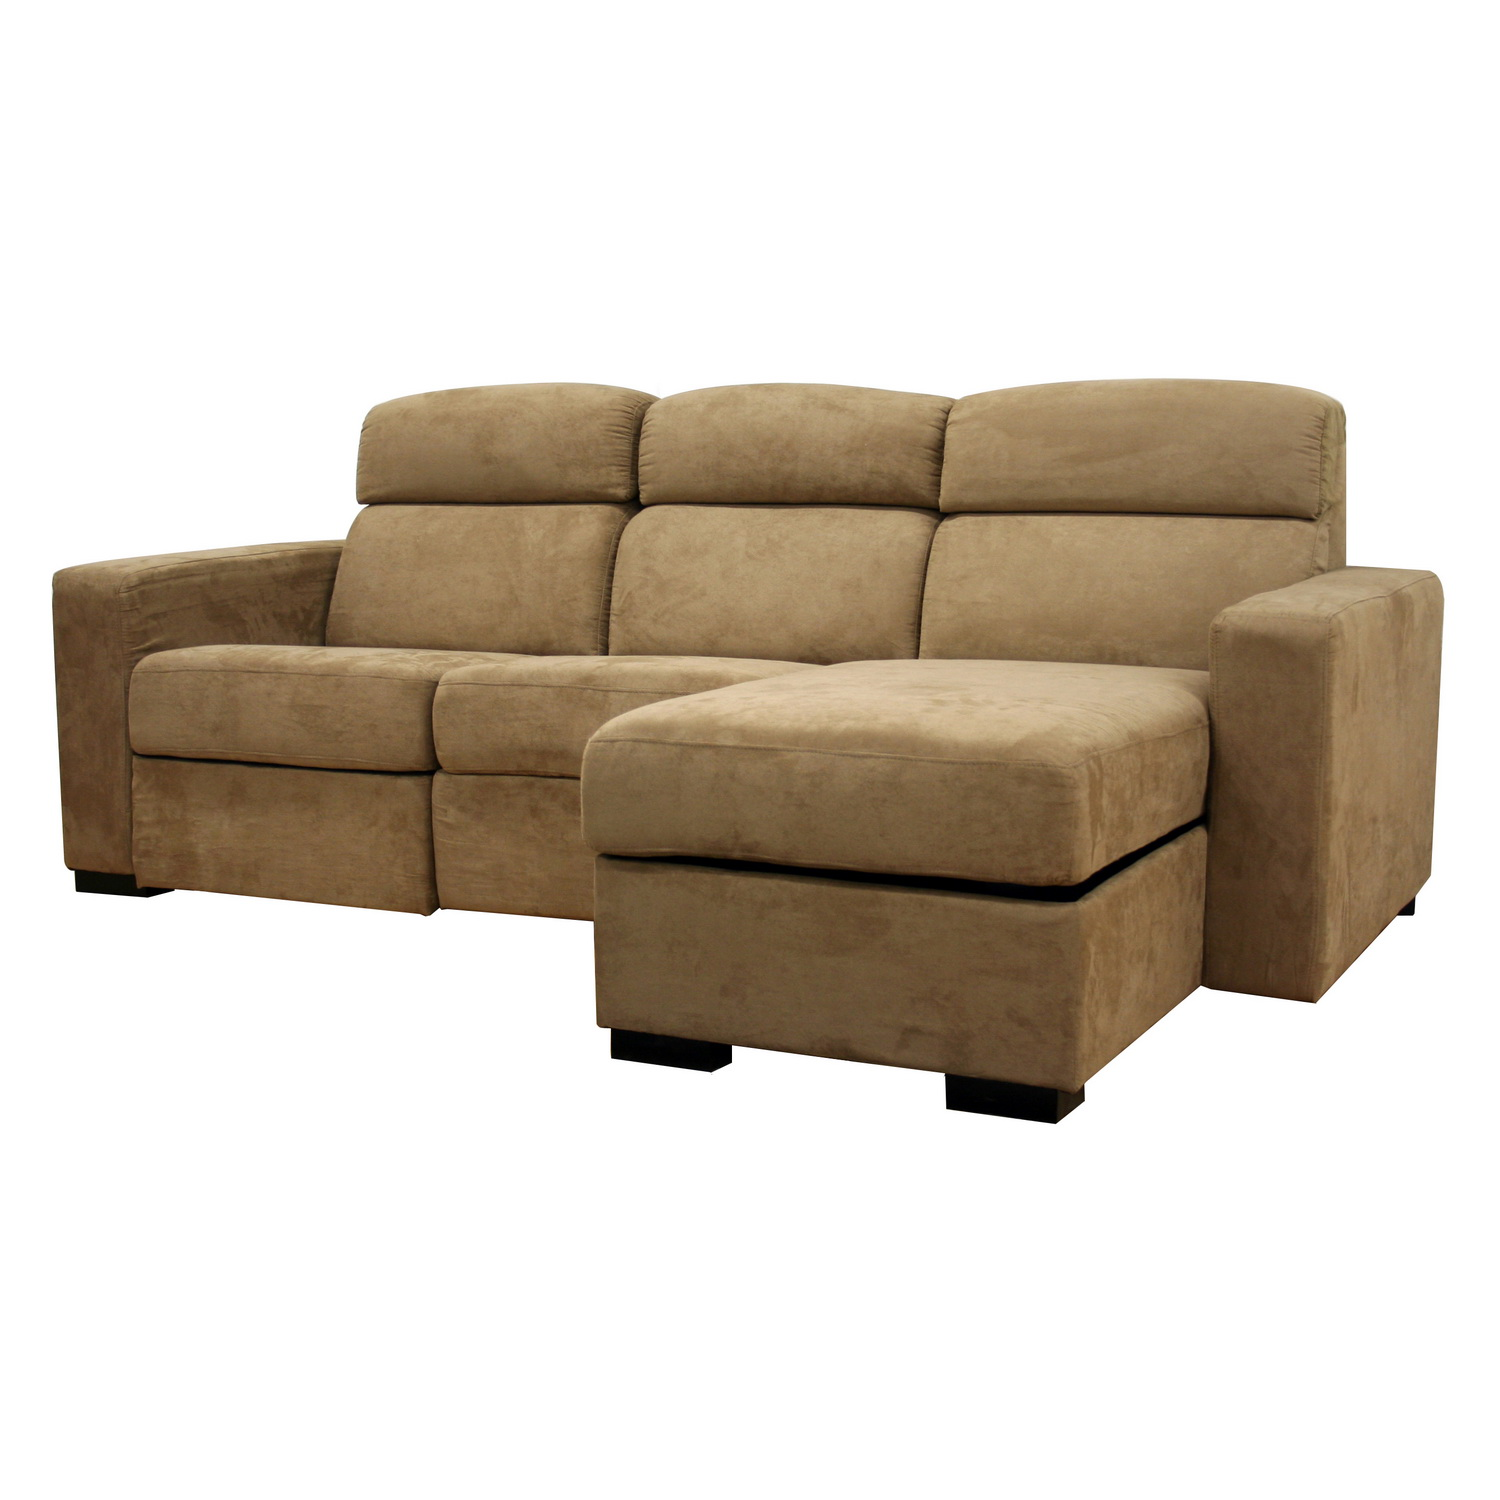 404 not found for Alexander sectional sofa chaise